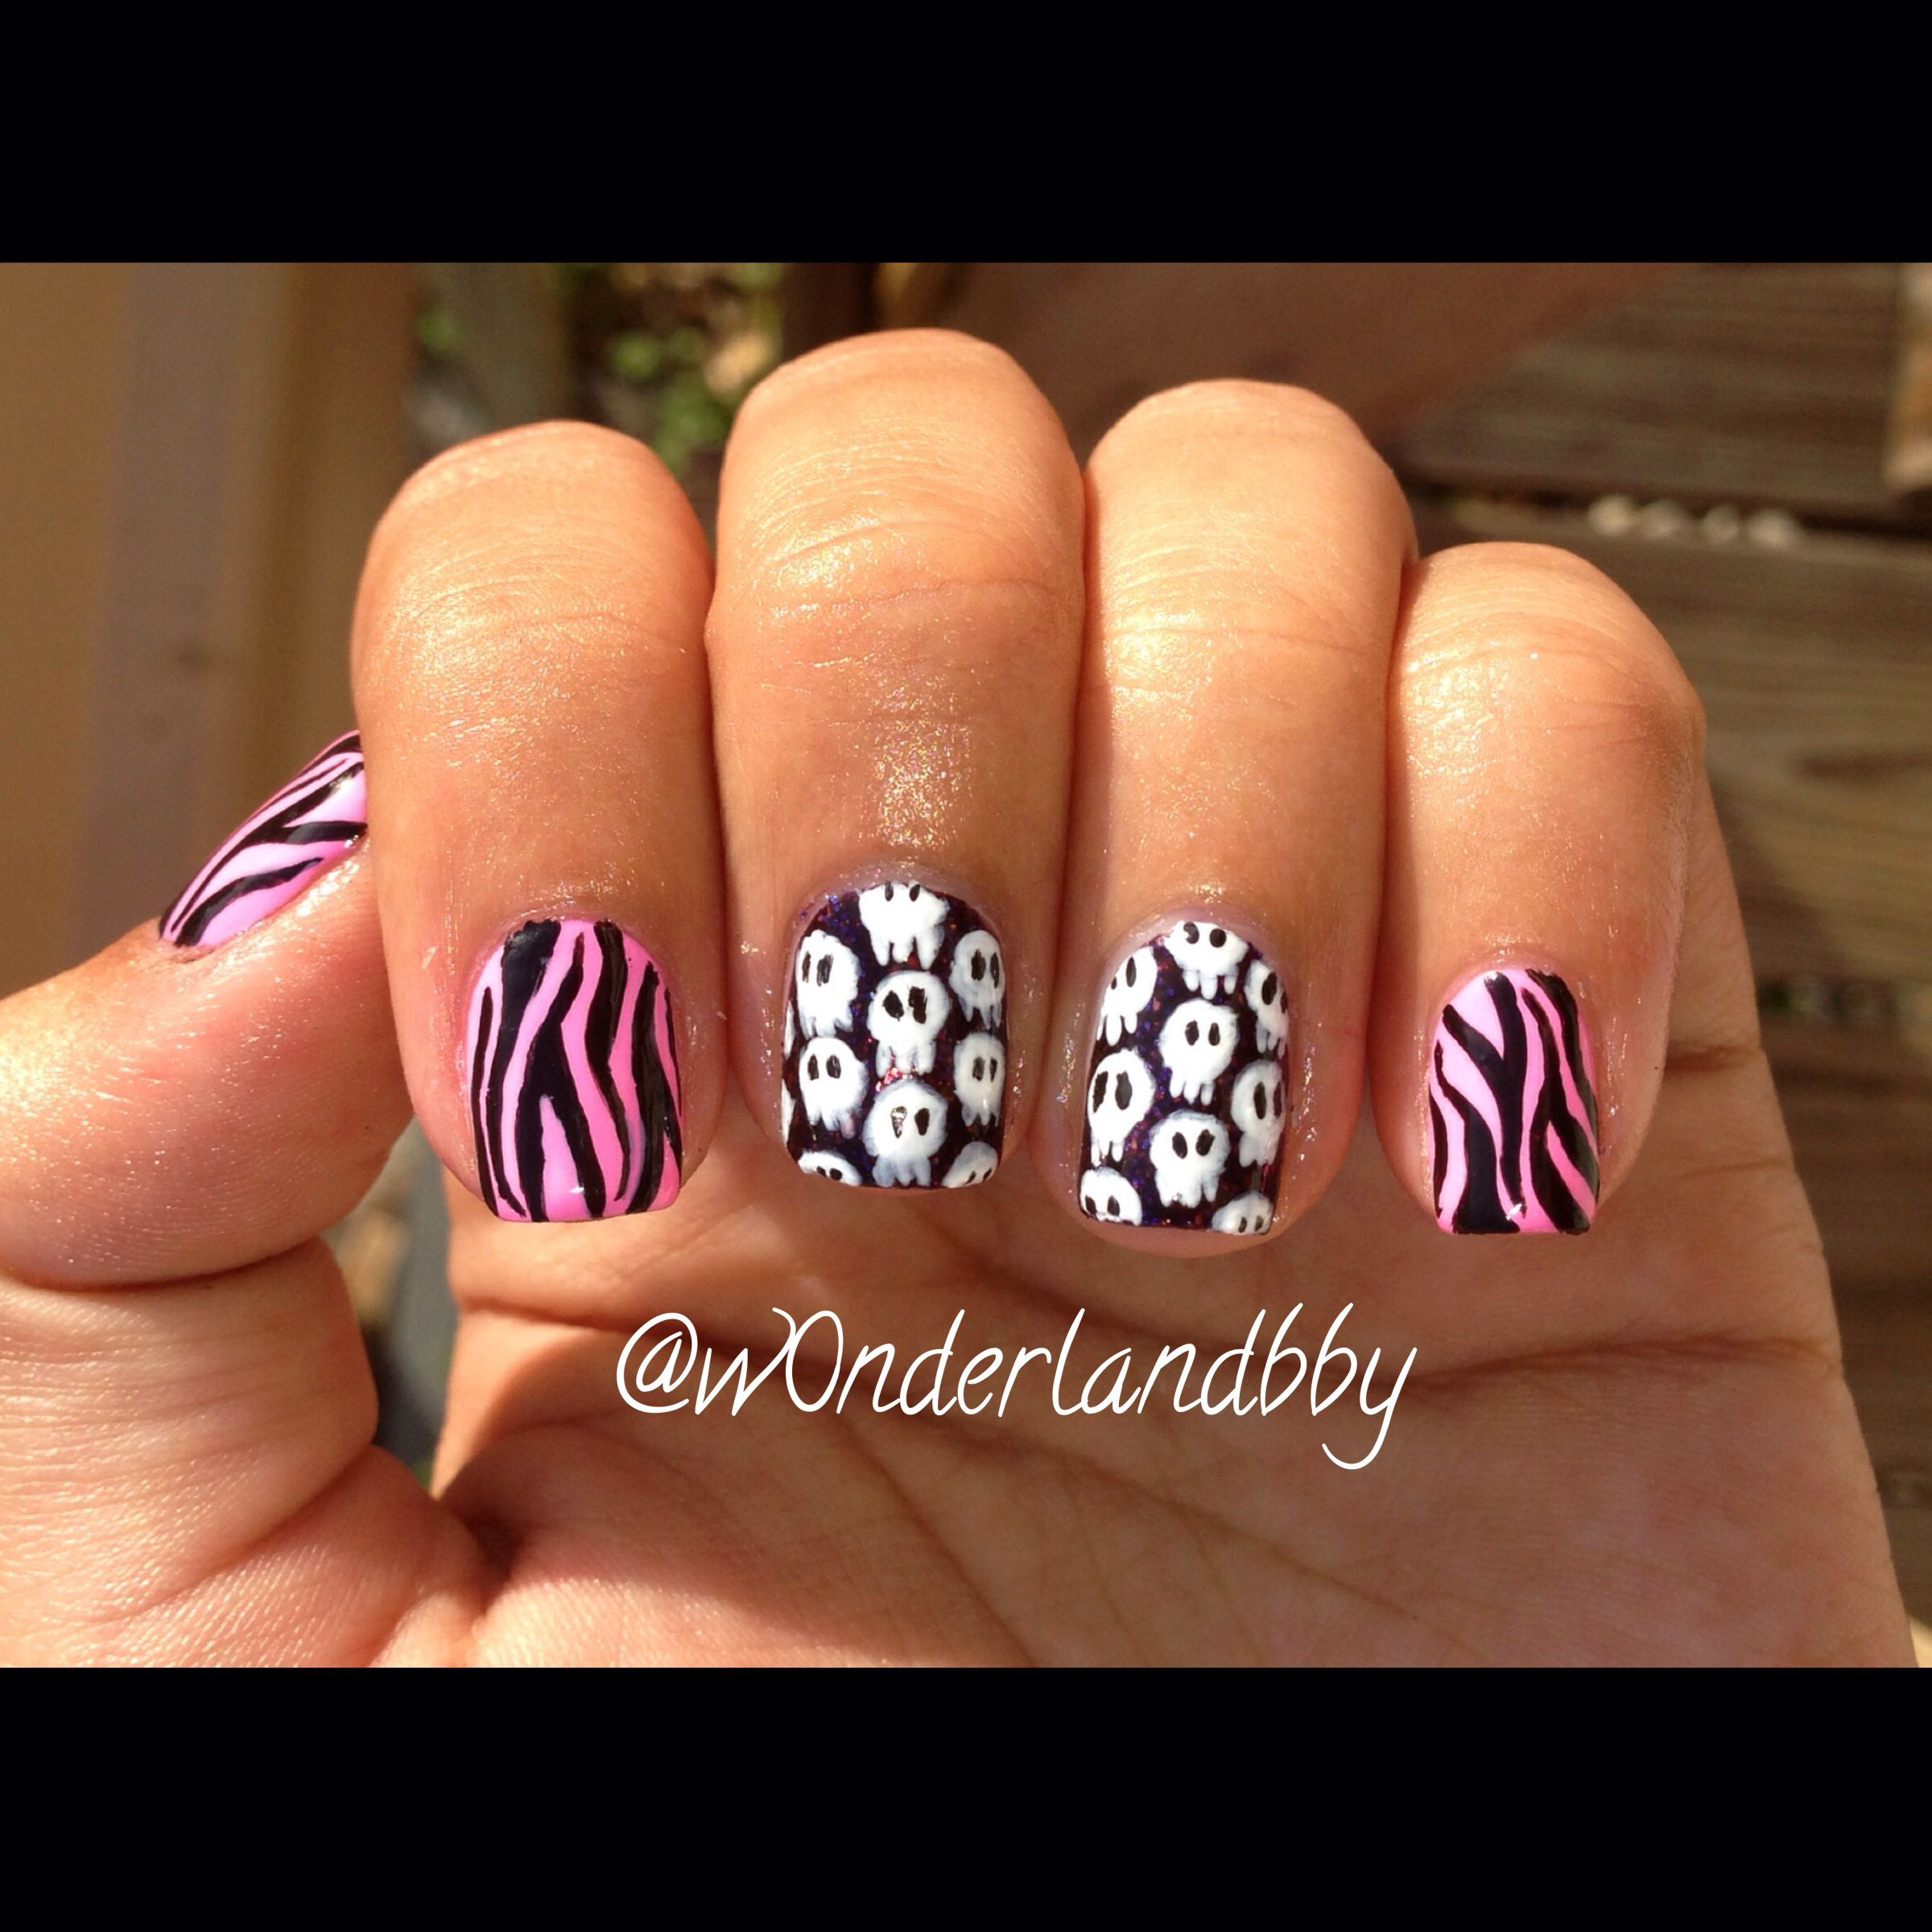 @pinkflyingcow inspired mani! Skulls and zebra print! Love it! The undie for the skulls is China Glaze Howl You Doin! Wish you could see the sparkly goodness!